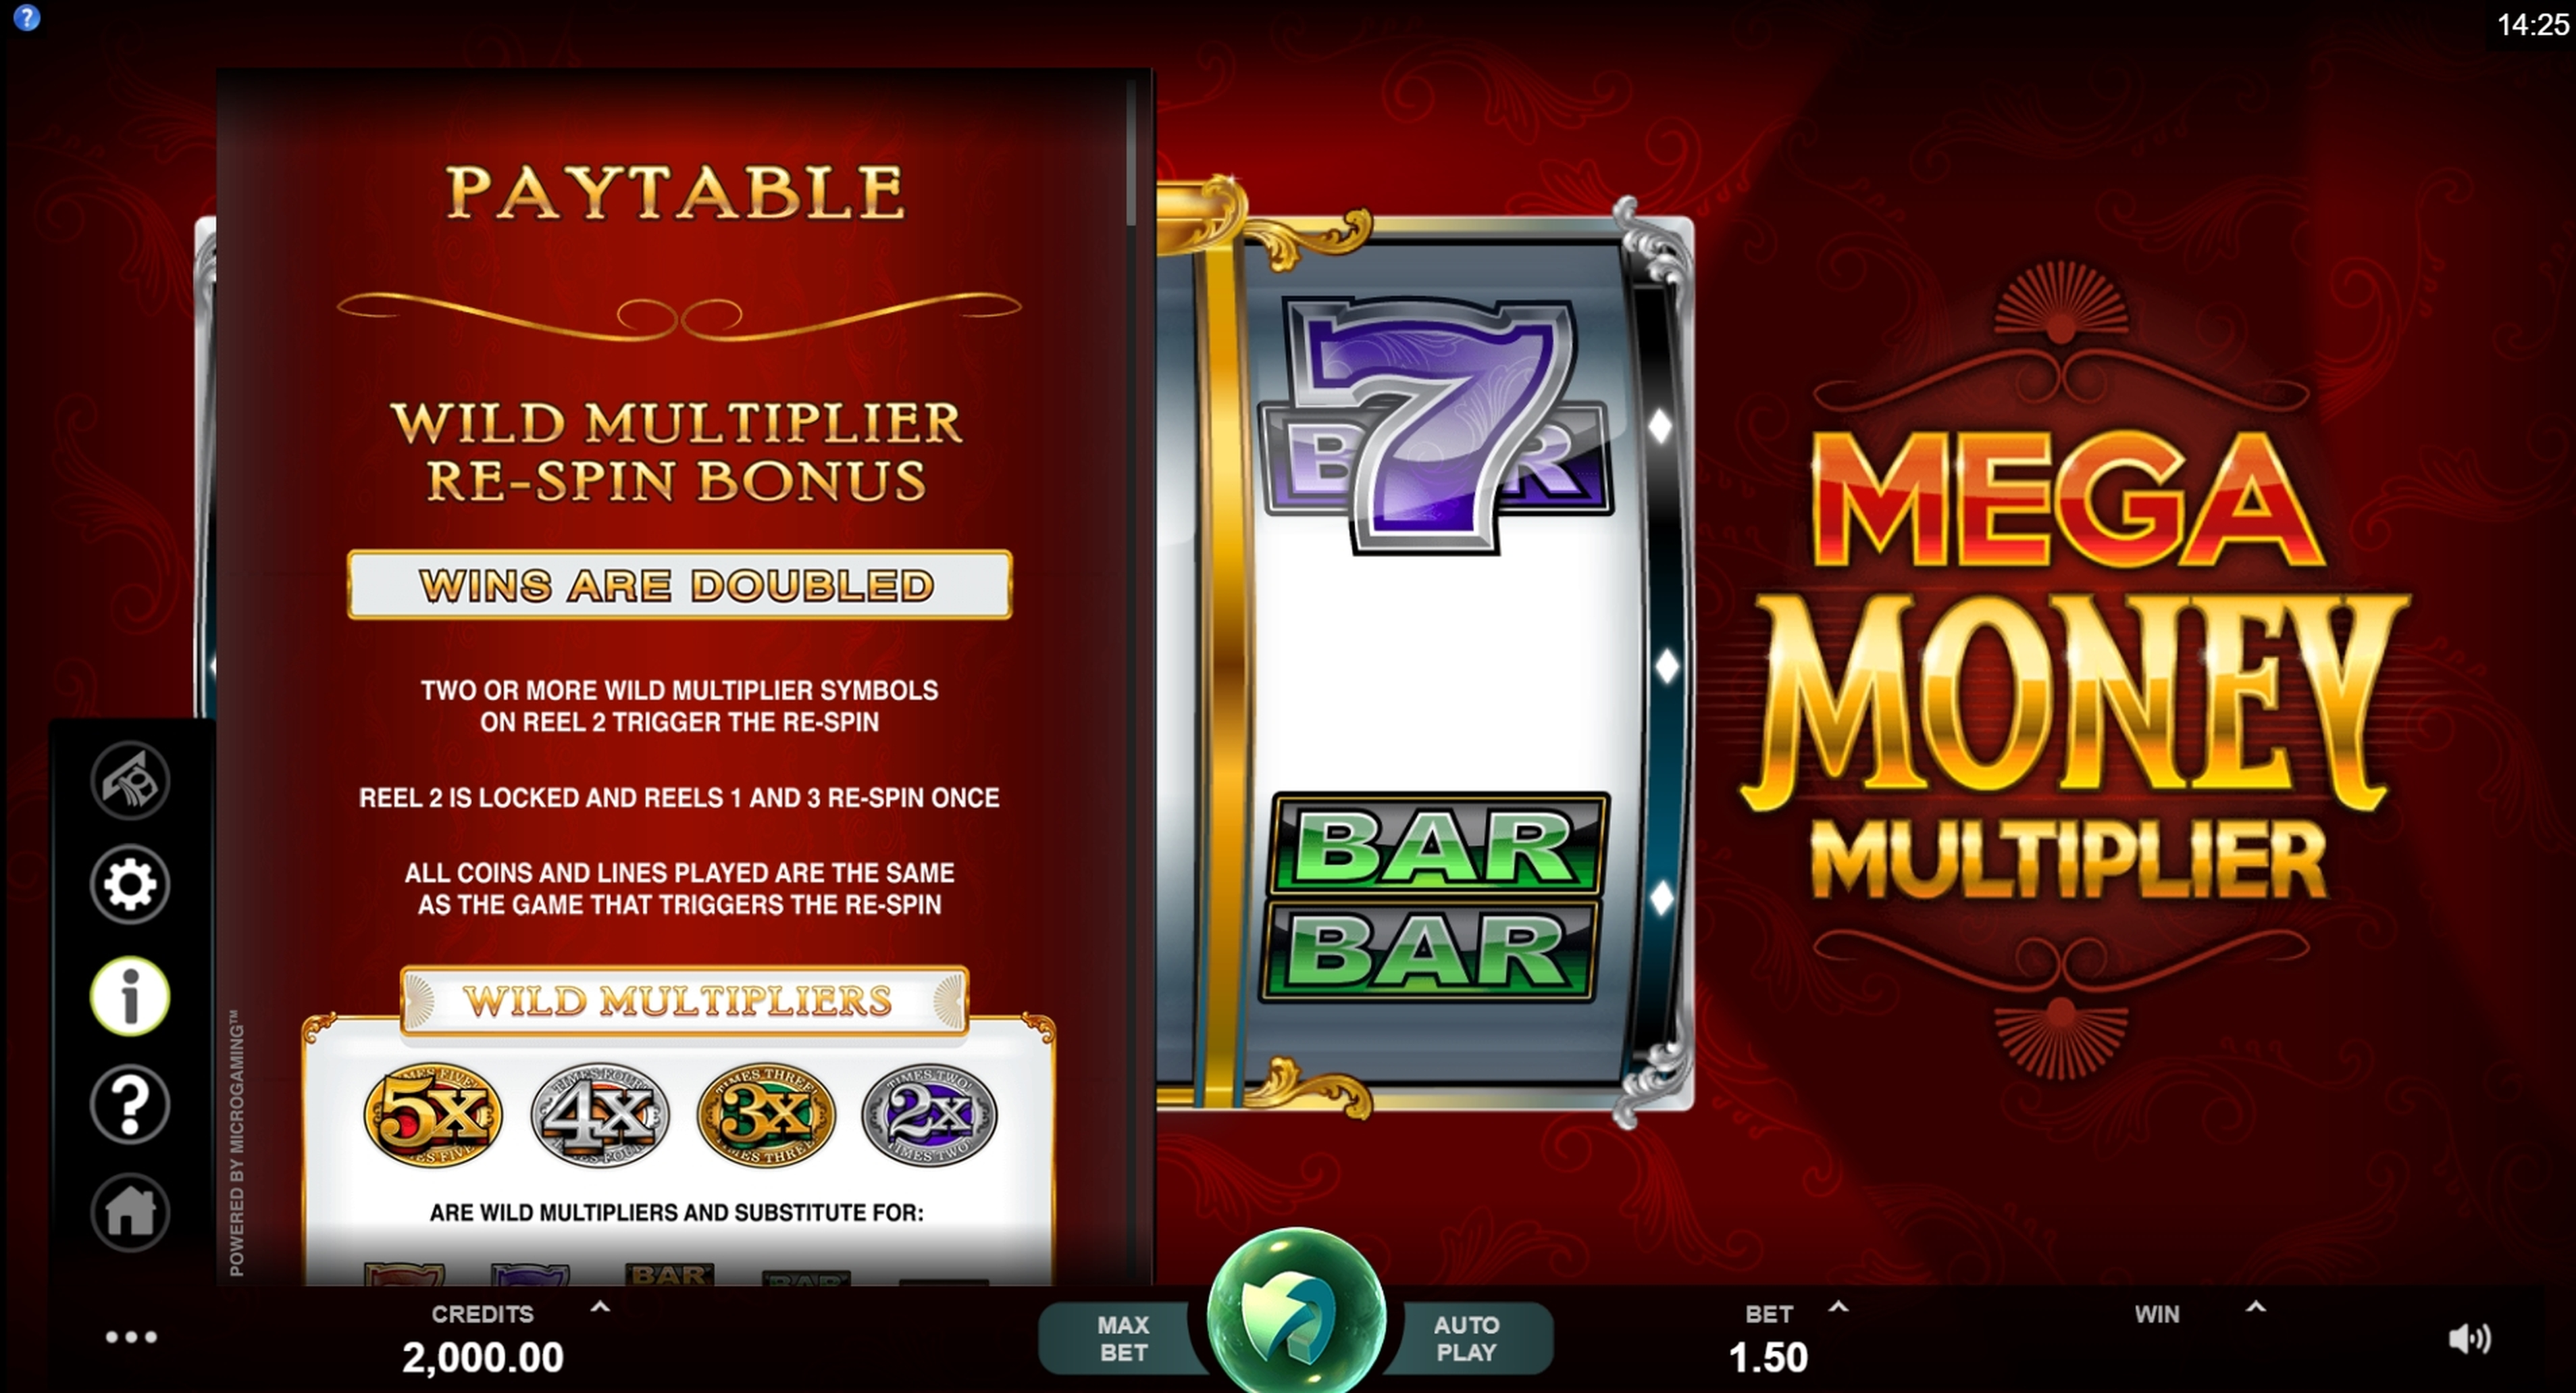 Info of Mega Money Multiplier Slot Game by MahiGaming